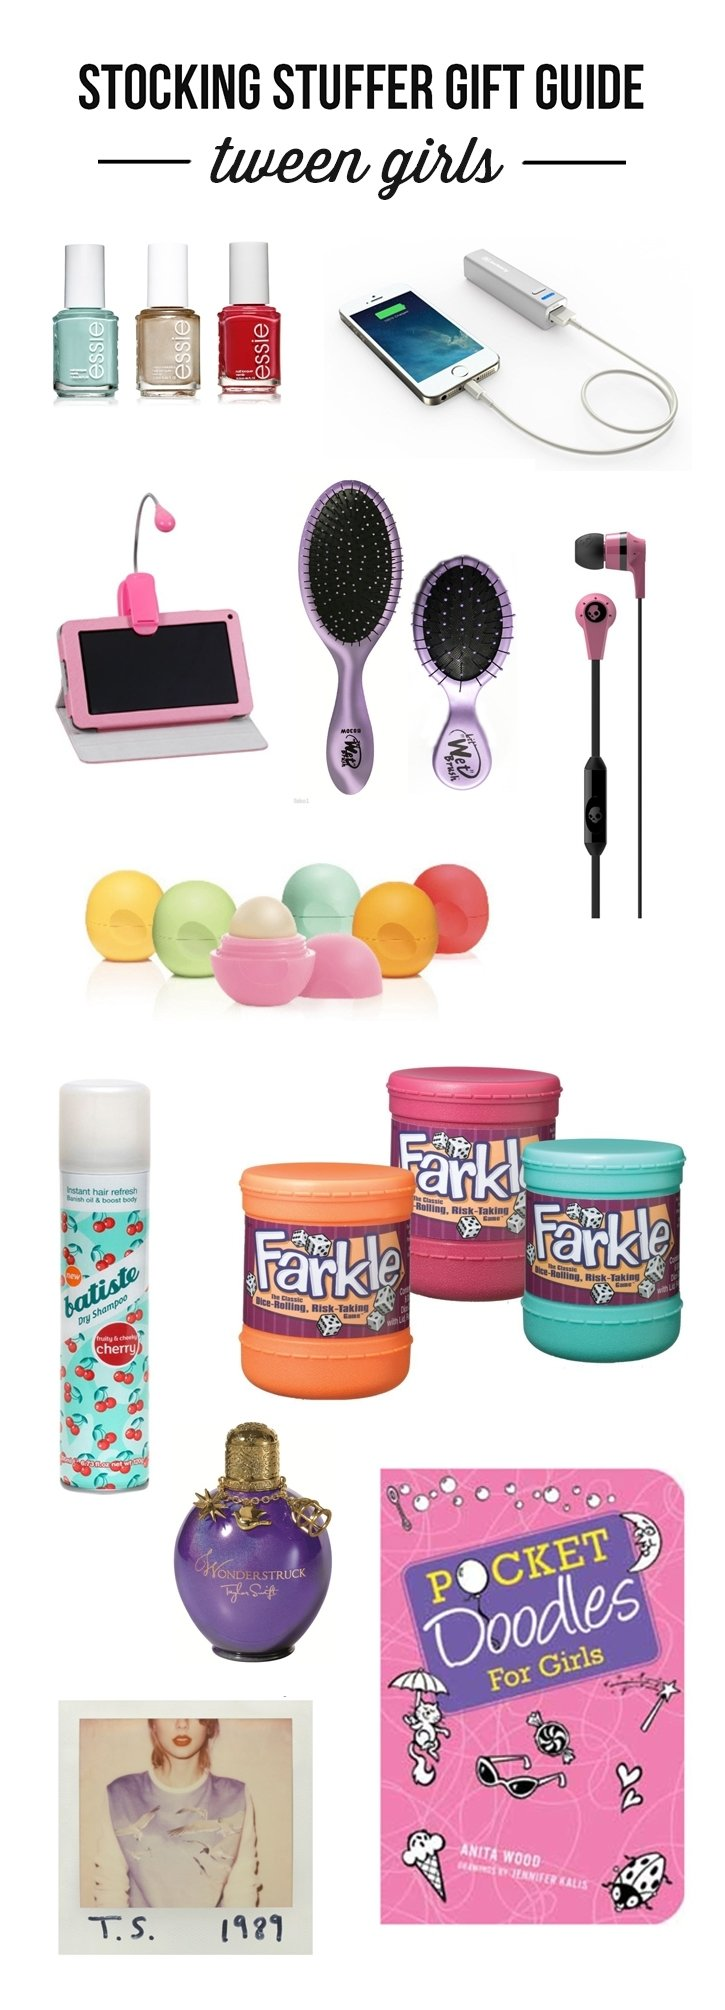 10 Stunning 12 Year Old Girl Gift Ideas ultimate stocking stuffer gift guide for kids of all ages 6 2021